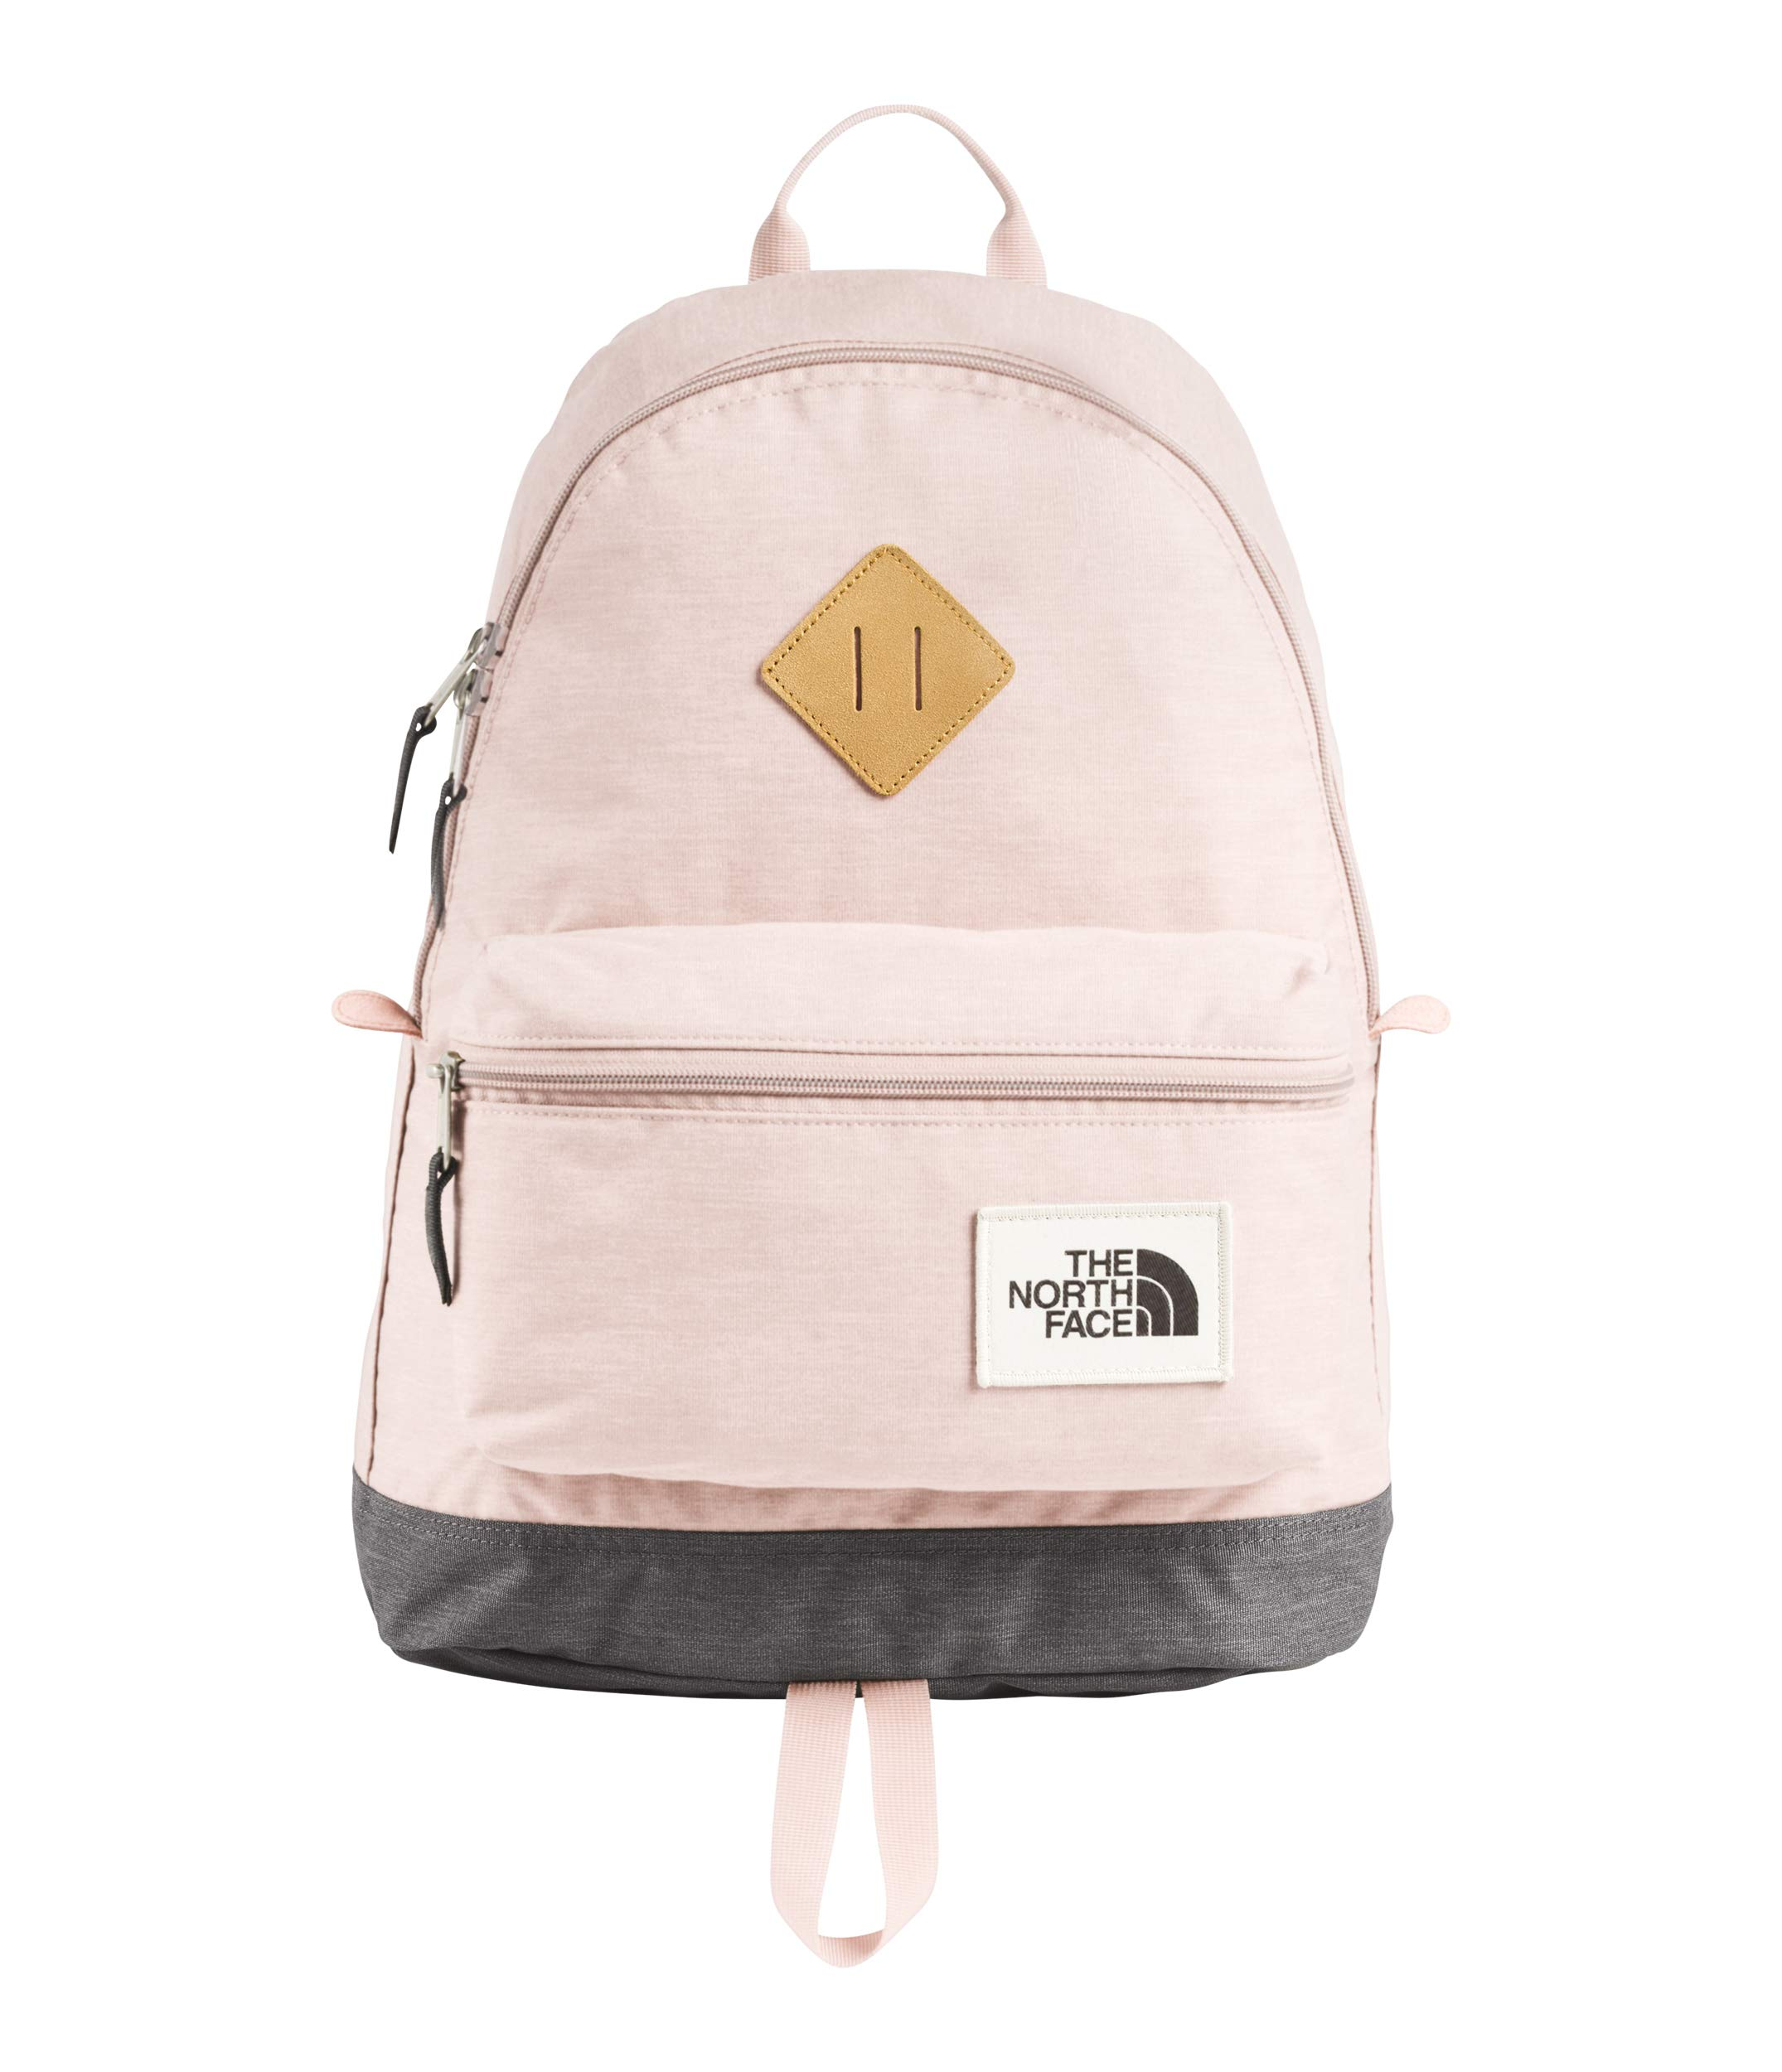 The North Face Mini Berkeley Backpack, Pink Salt/Rabbit Grey Light Heather by The North Face